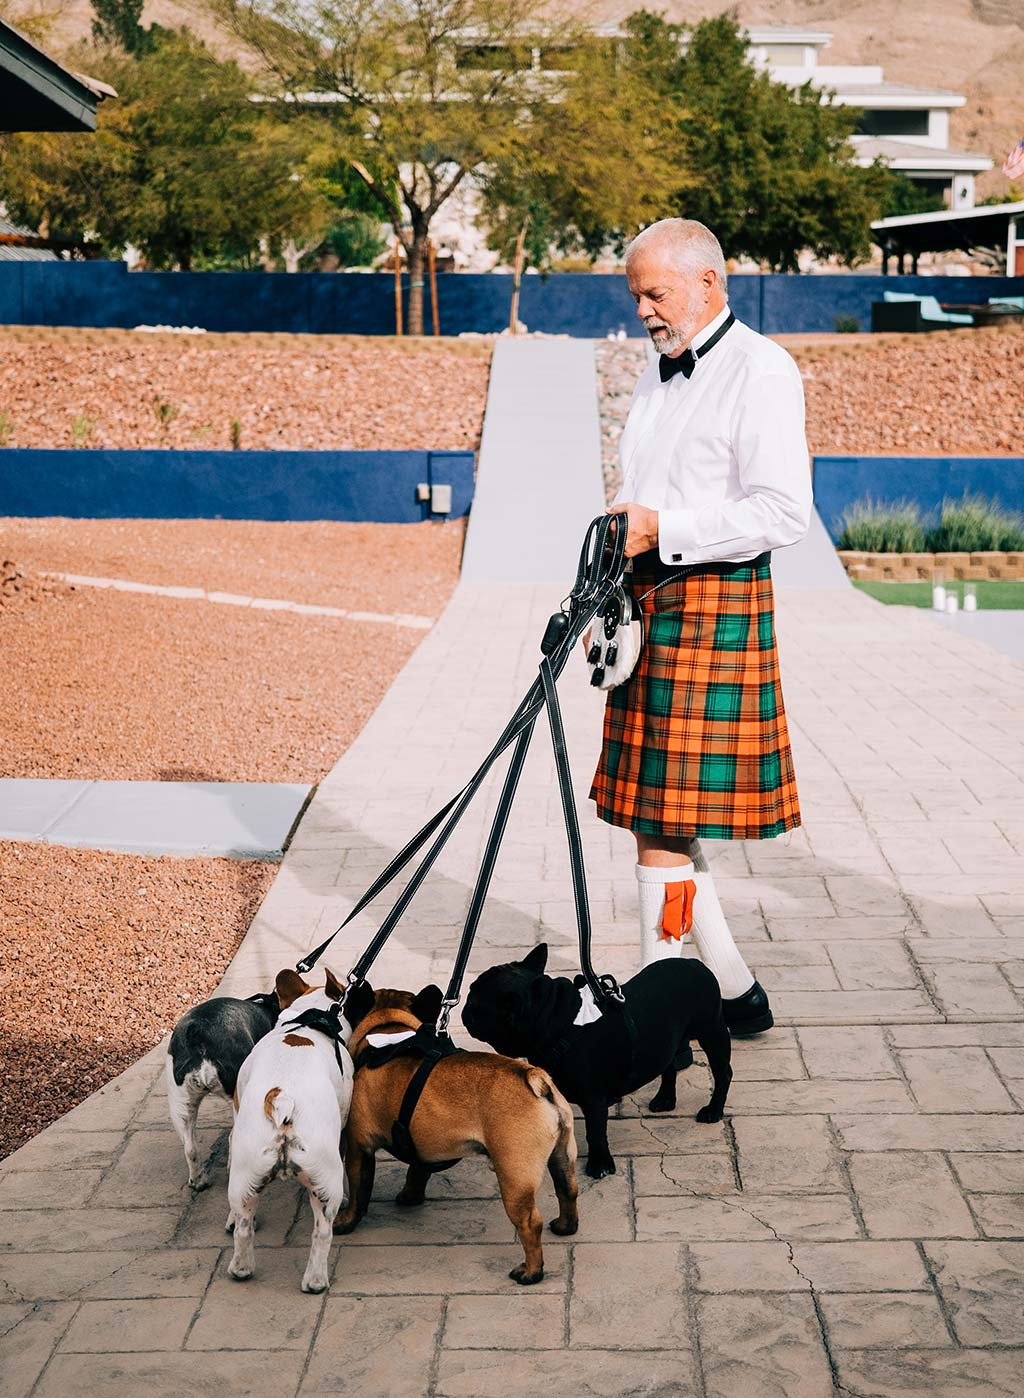 Grooms Father wearing a Kilt